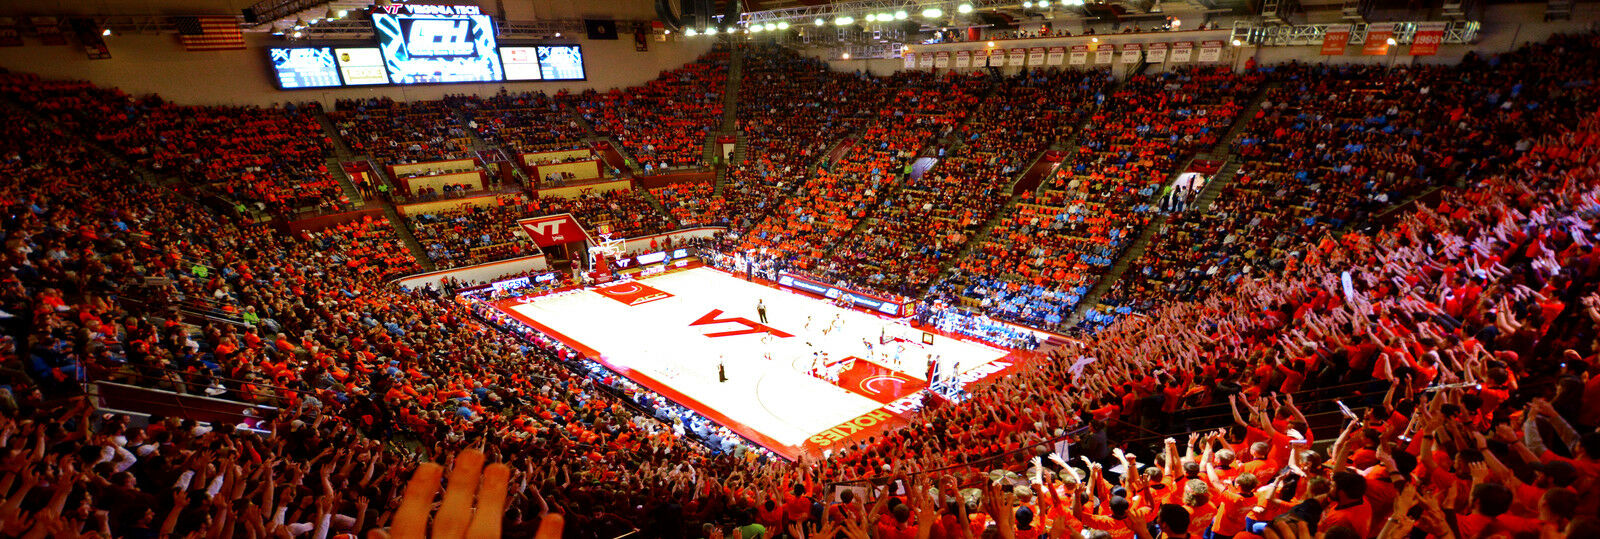 Miami Hurricanes at Virginia Tech Hokies Basketball